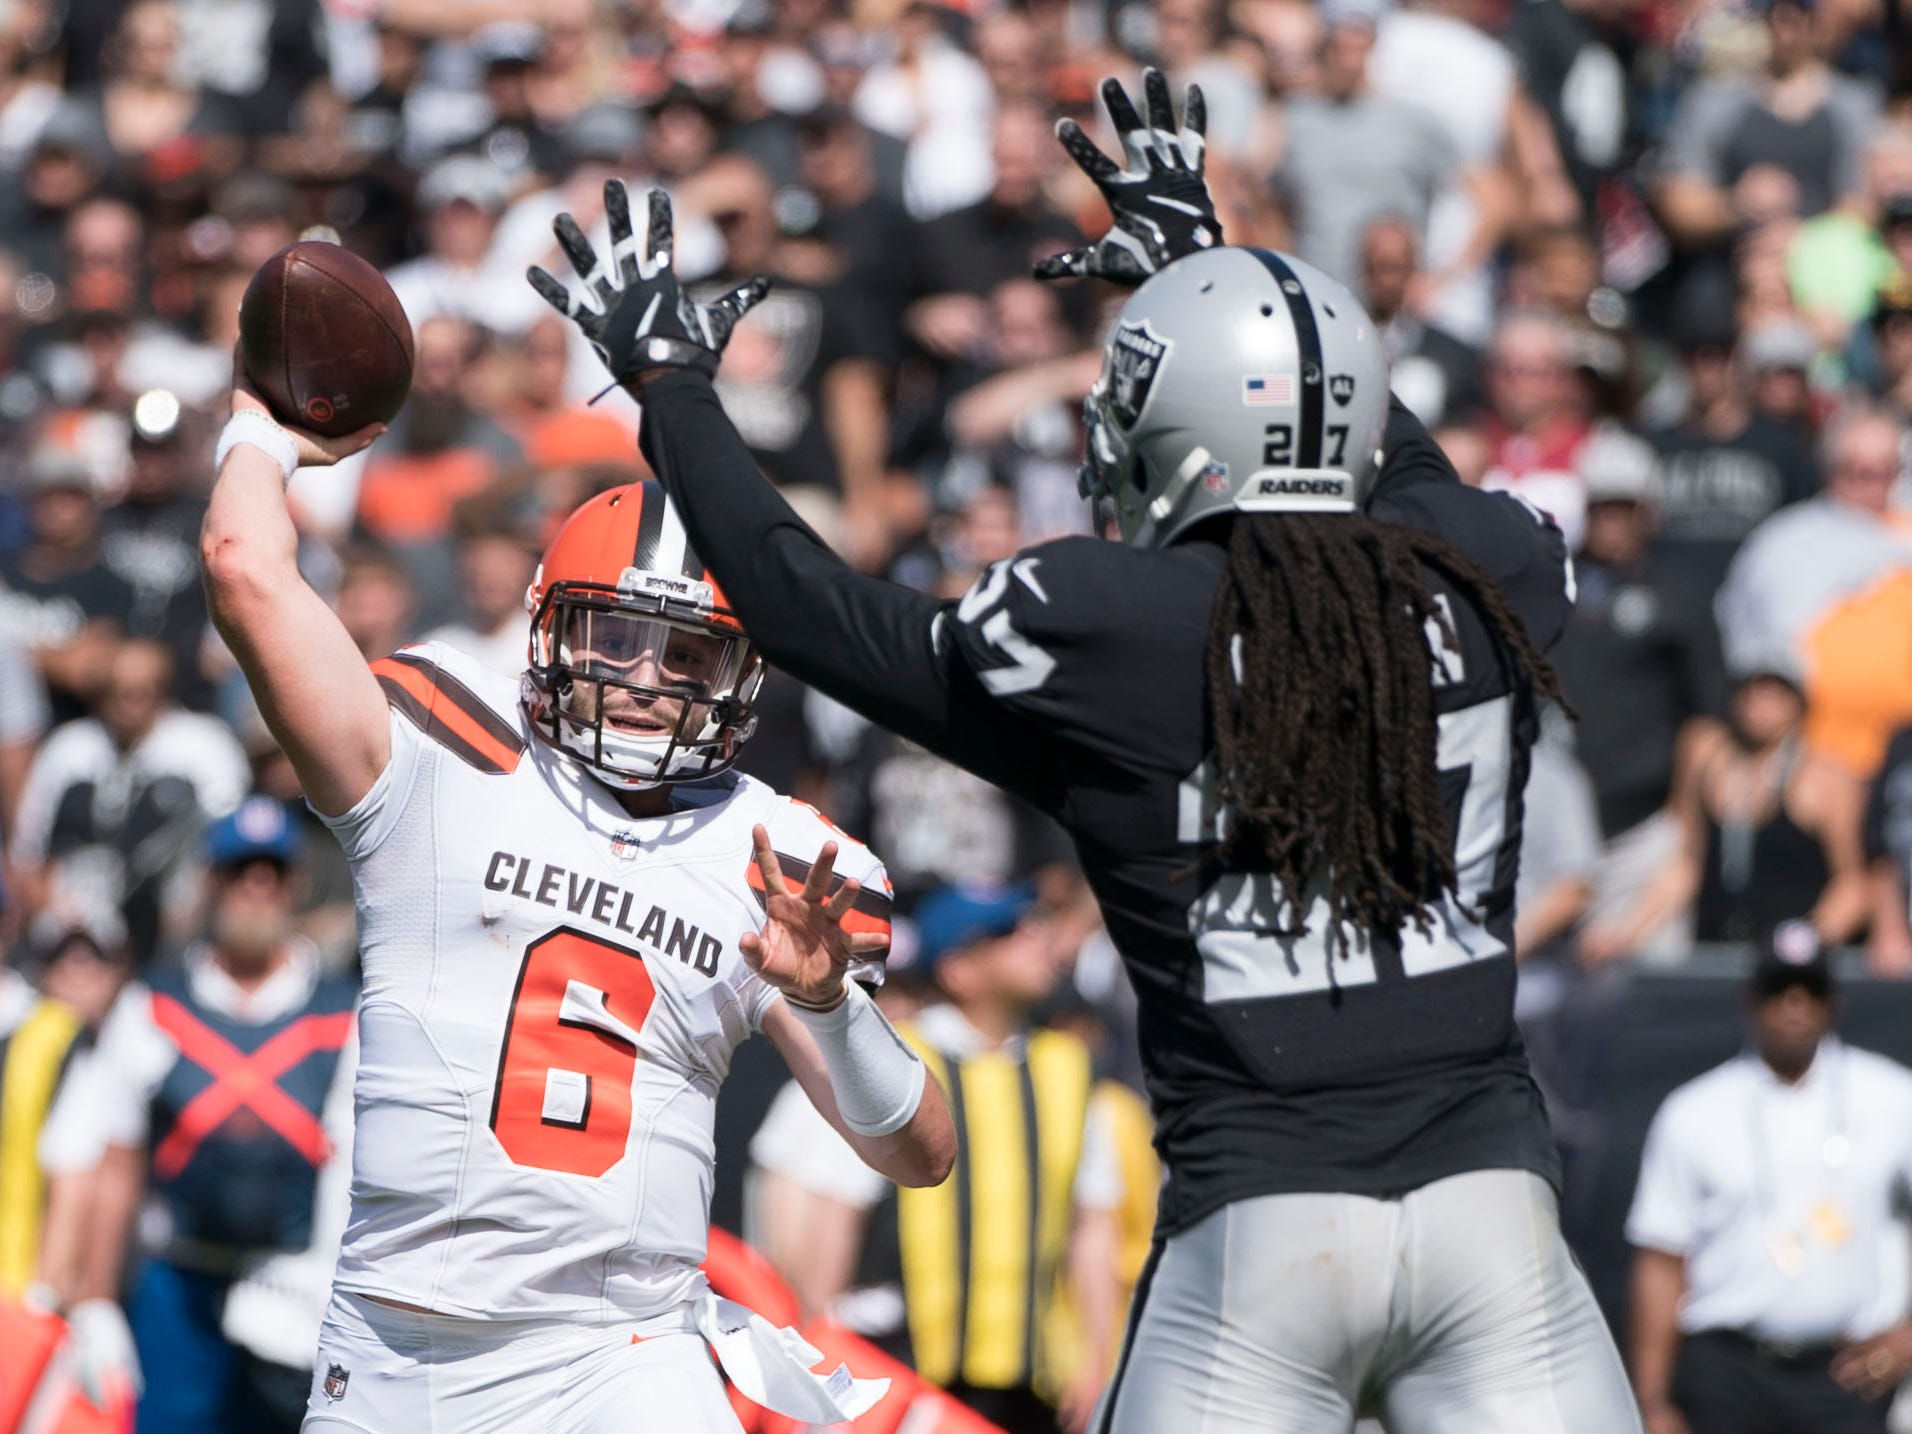 Cleveland Browns quarterback Baker Mayfield passes the football against Oakland Raiders defensive back Reggie Nelson during the first quarter at Oakland Coliseum.